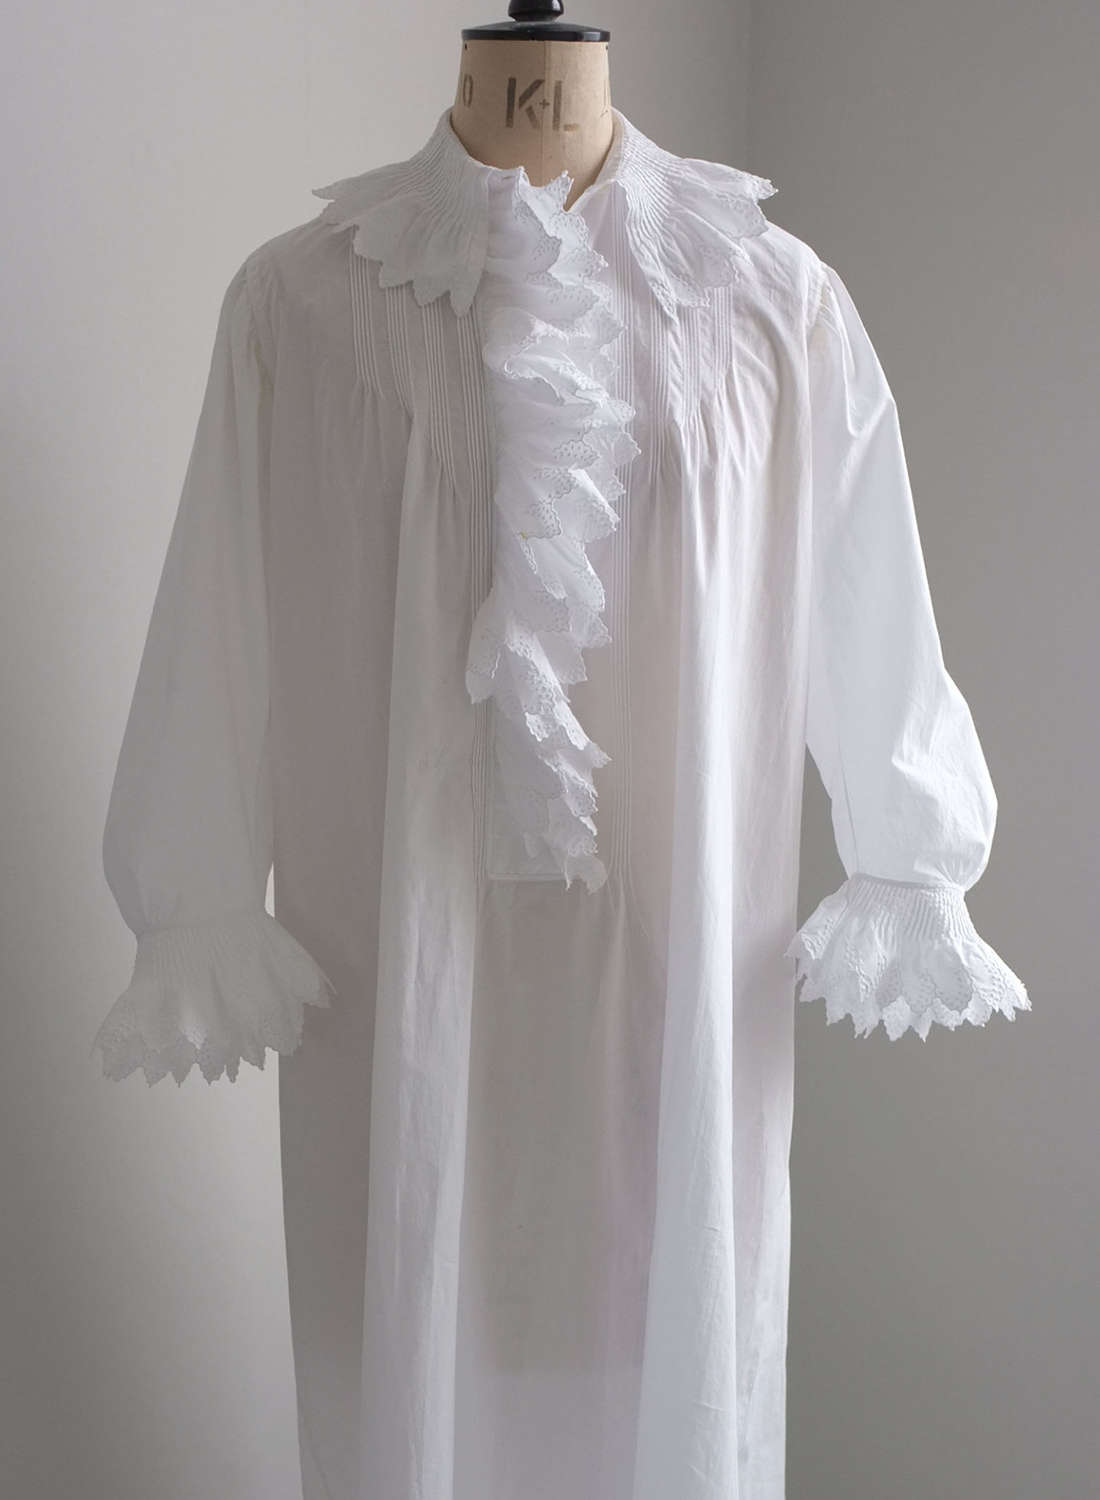 Antique 19th Century French Cotton Nightdress with Pleated Collar